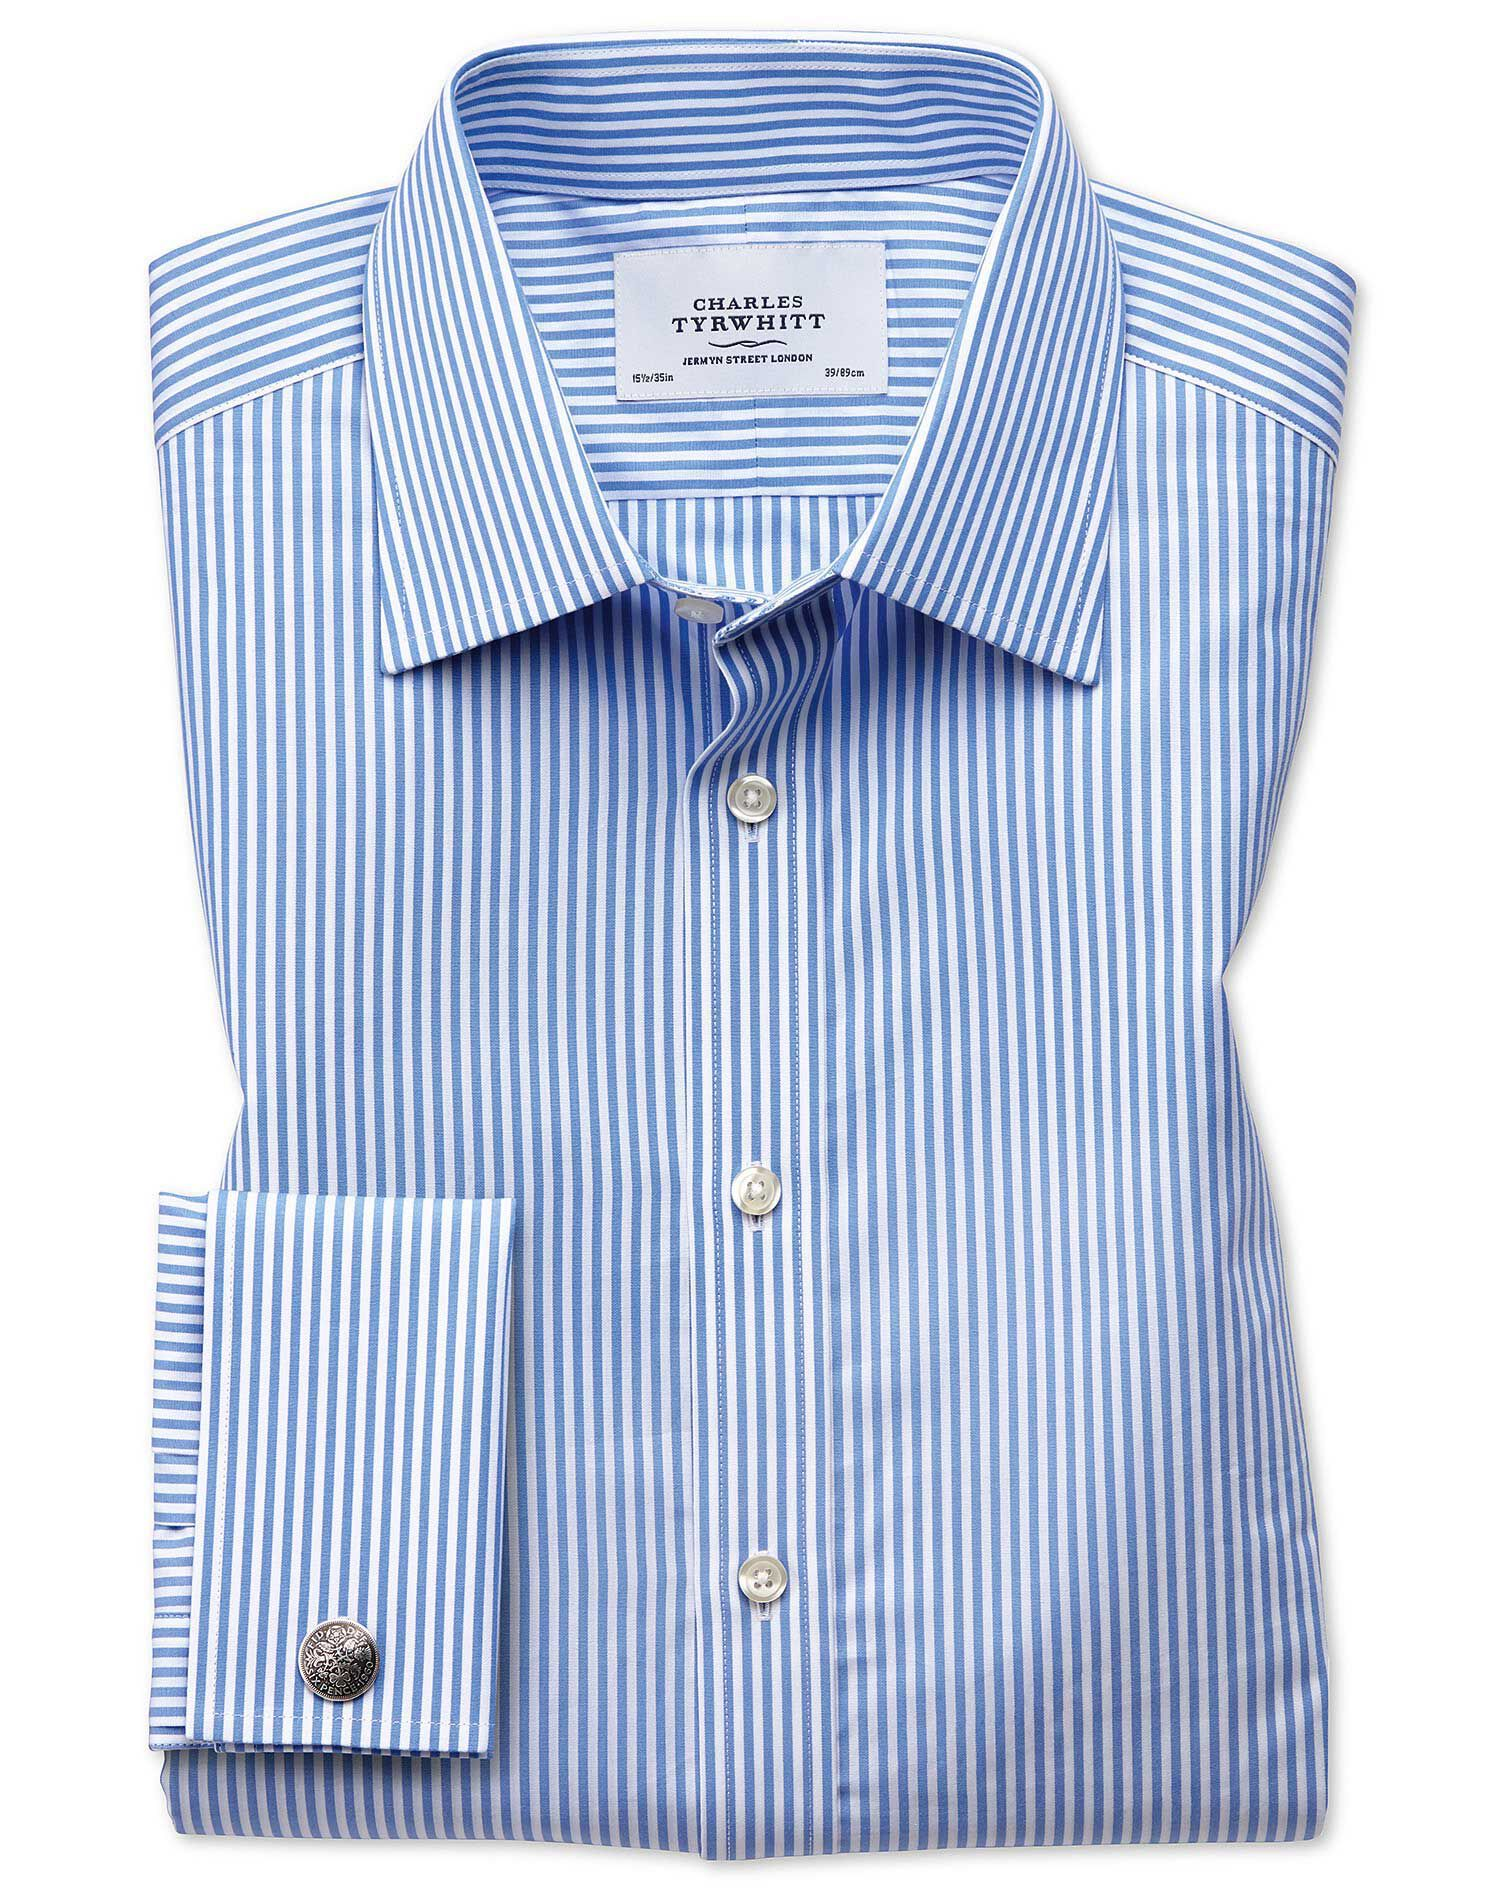 Charles Tyrwhitt Classic Fit Bengal Stripe Sky Blue Cotton Formal Shirt Size 15.5/32